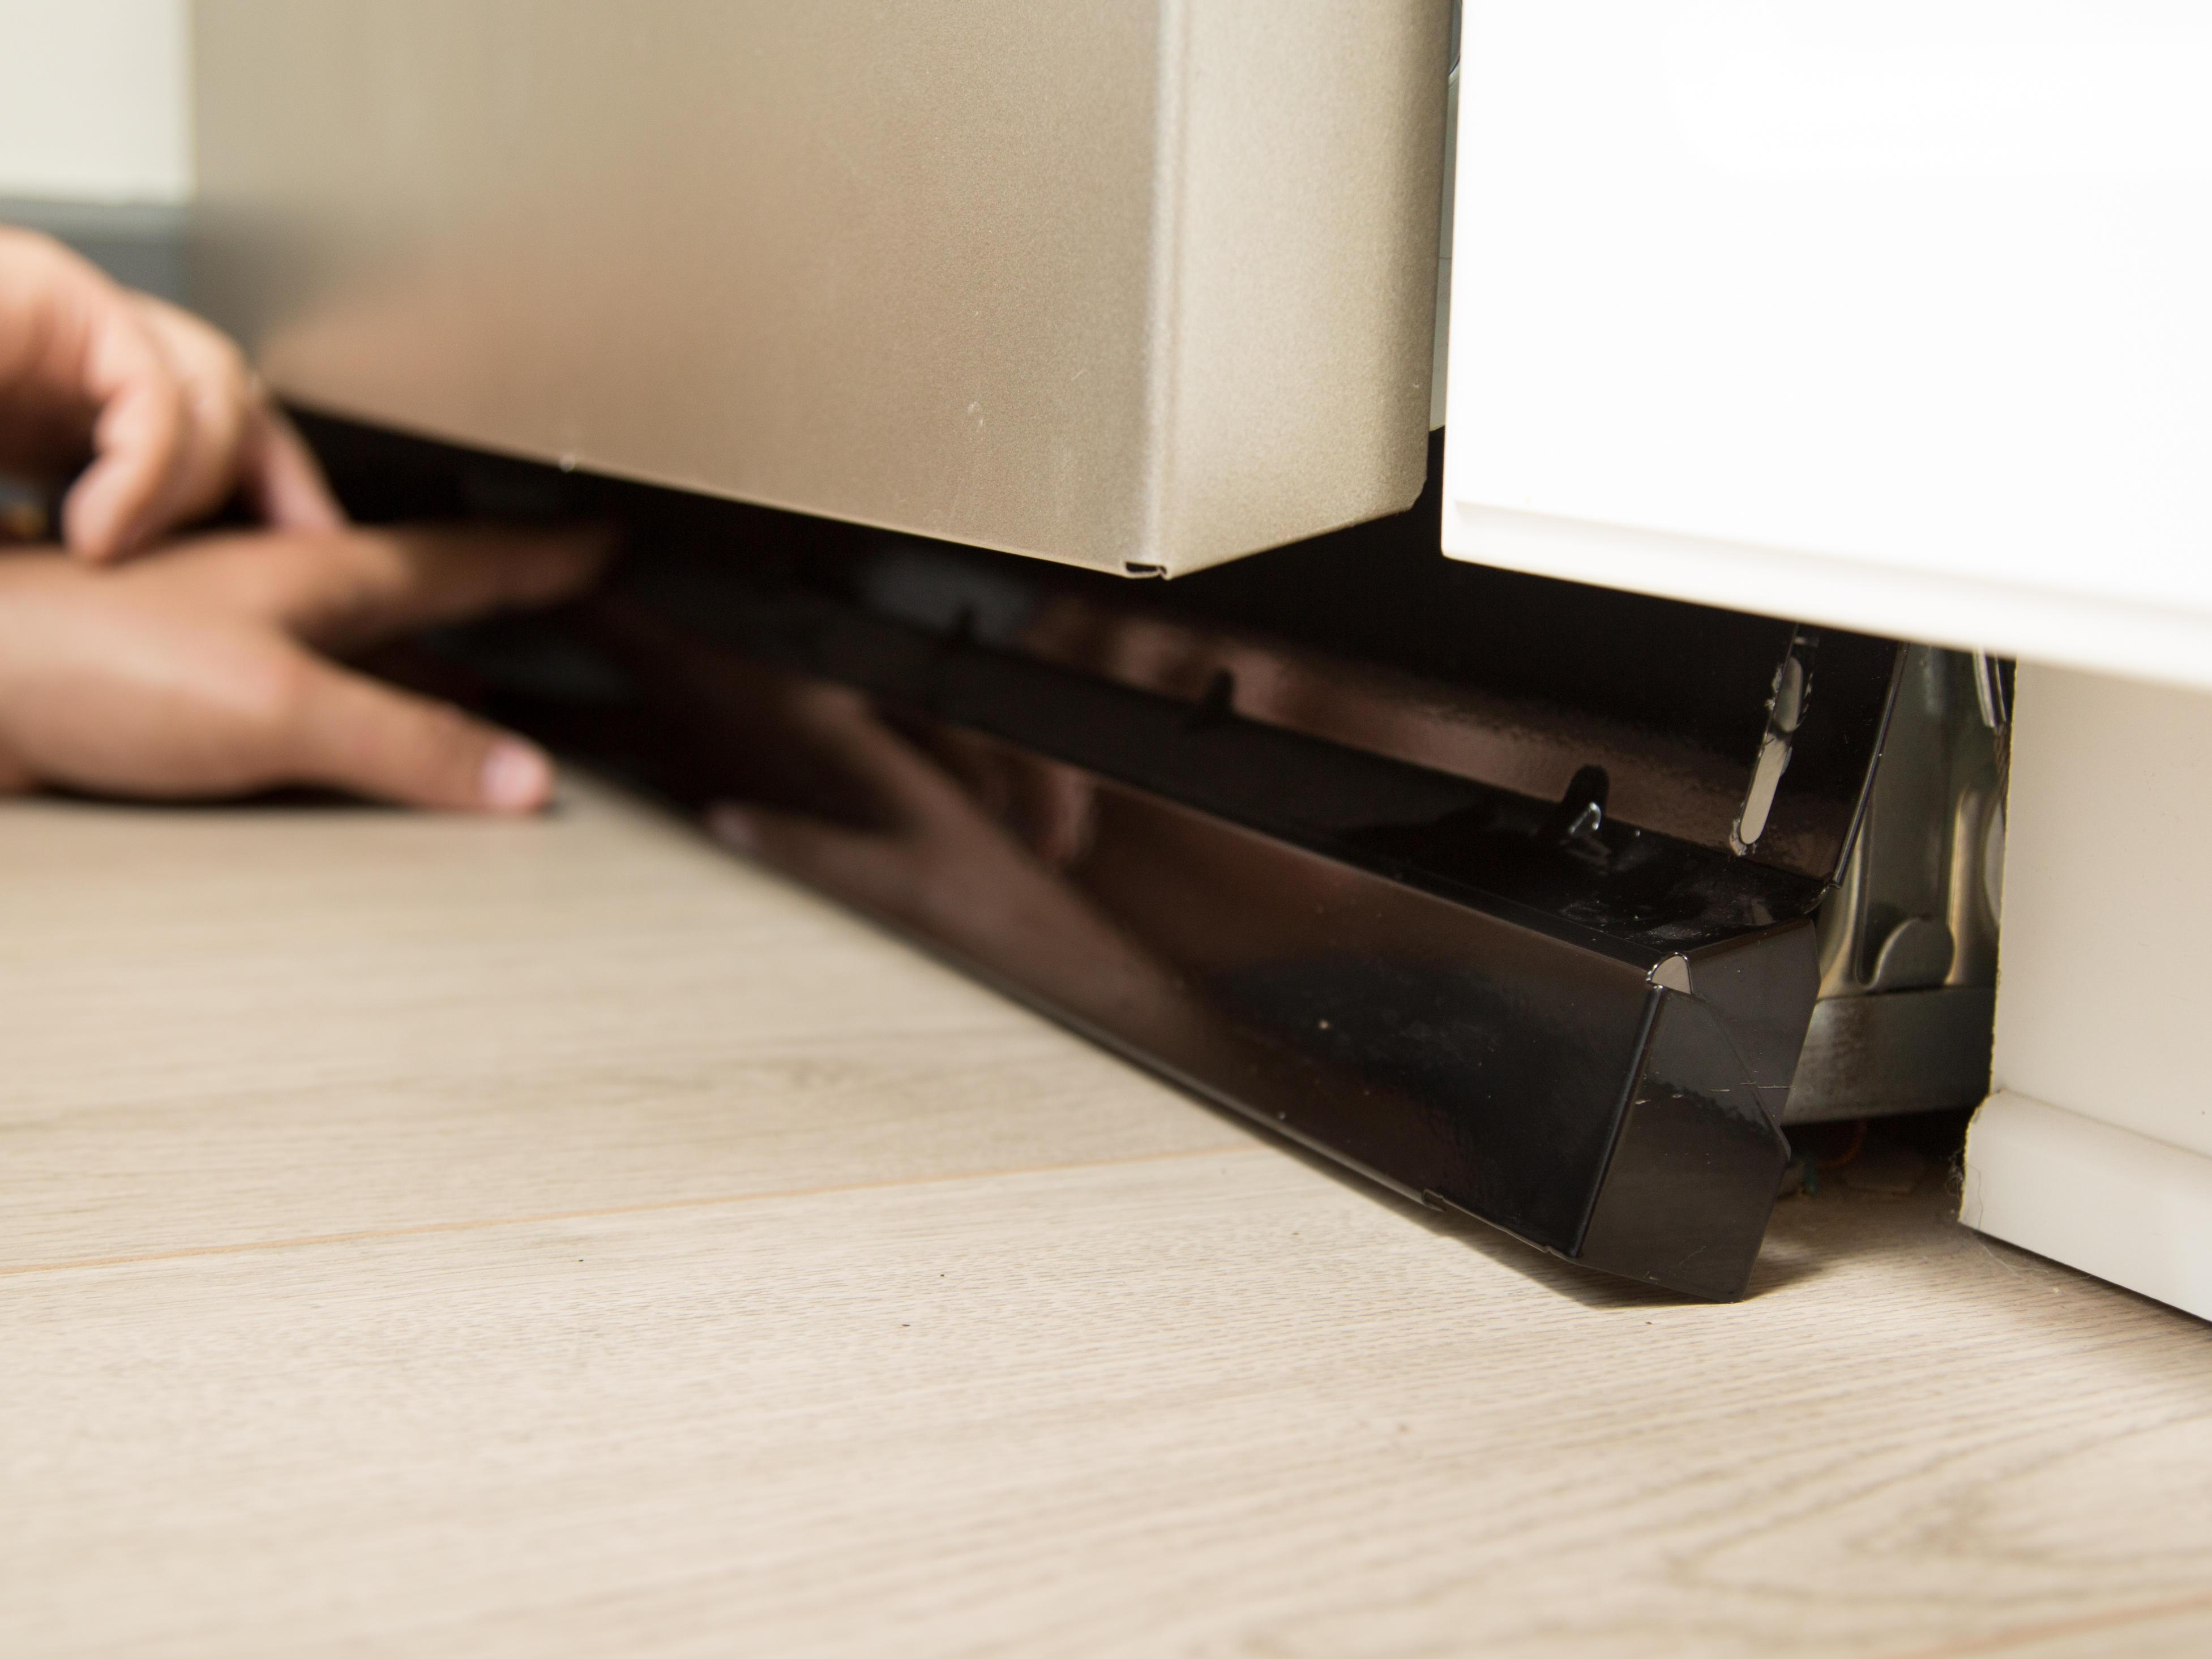 how-to-dishwasher-5